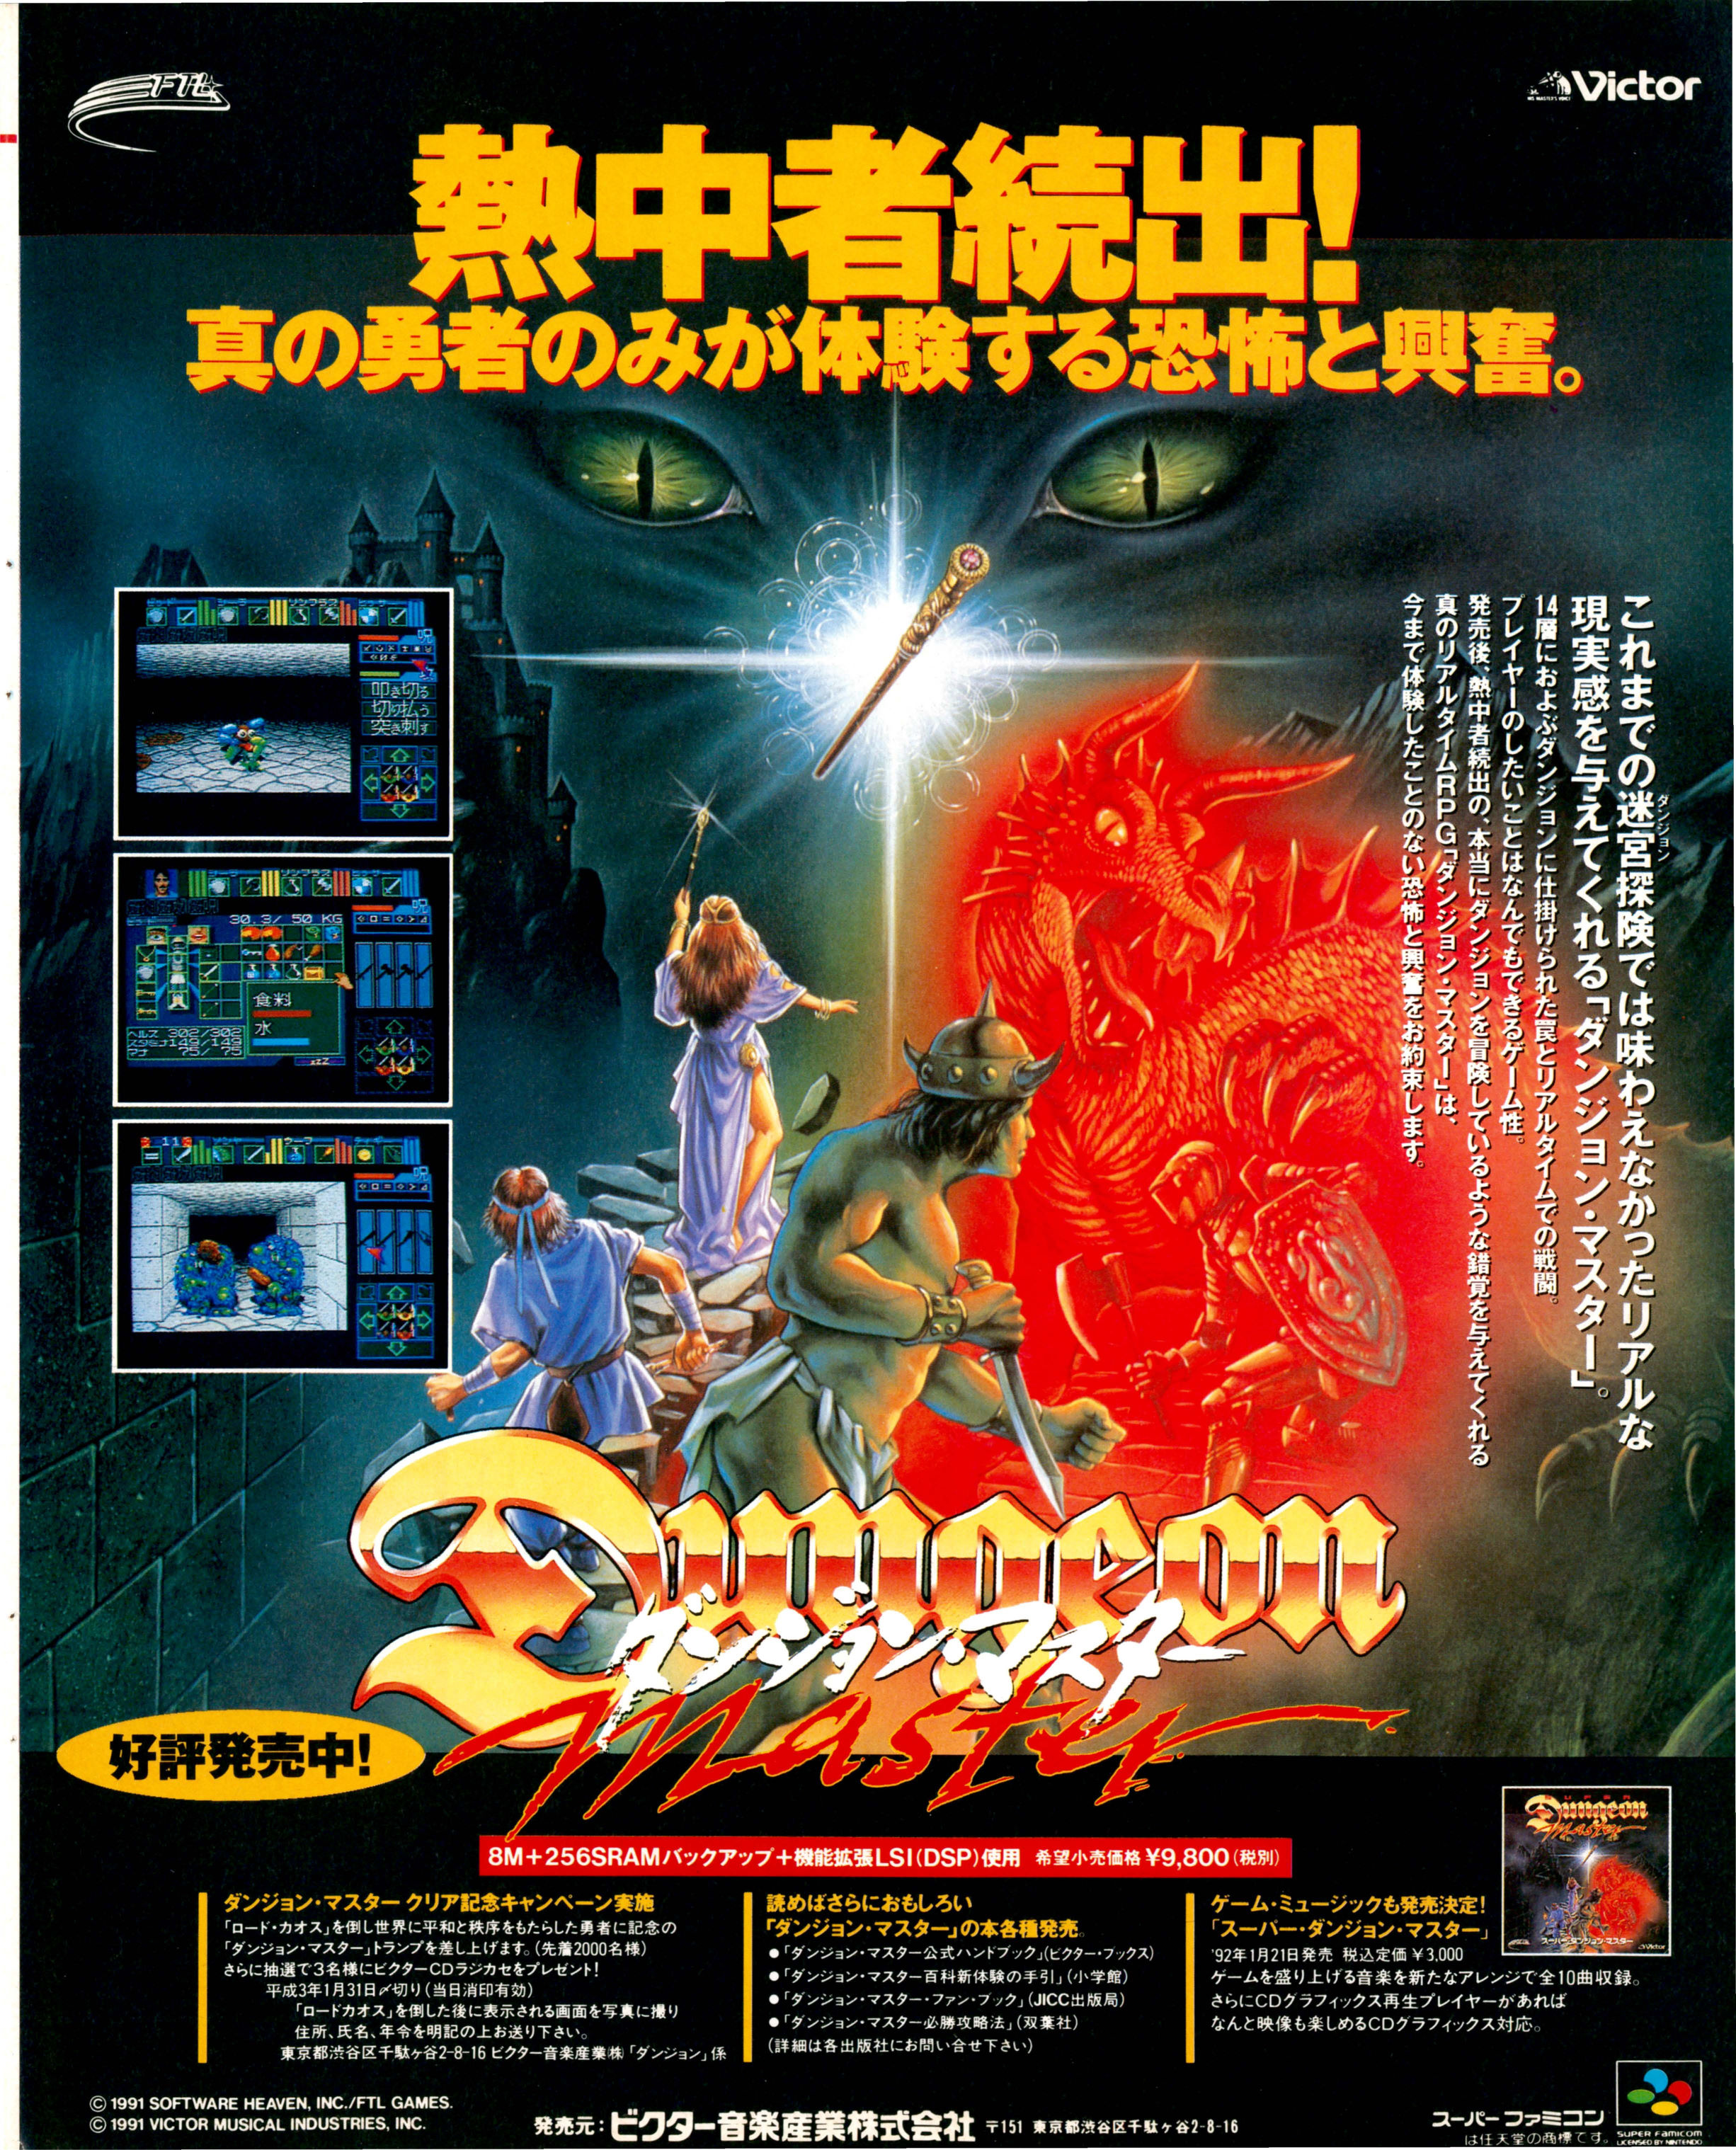 Dungeon Master for Super Famicom Advertisement published in Japanese magazine 'Famitsu', Issue #162 24 January 1992, Page 141